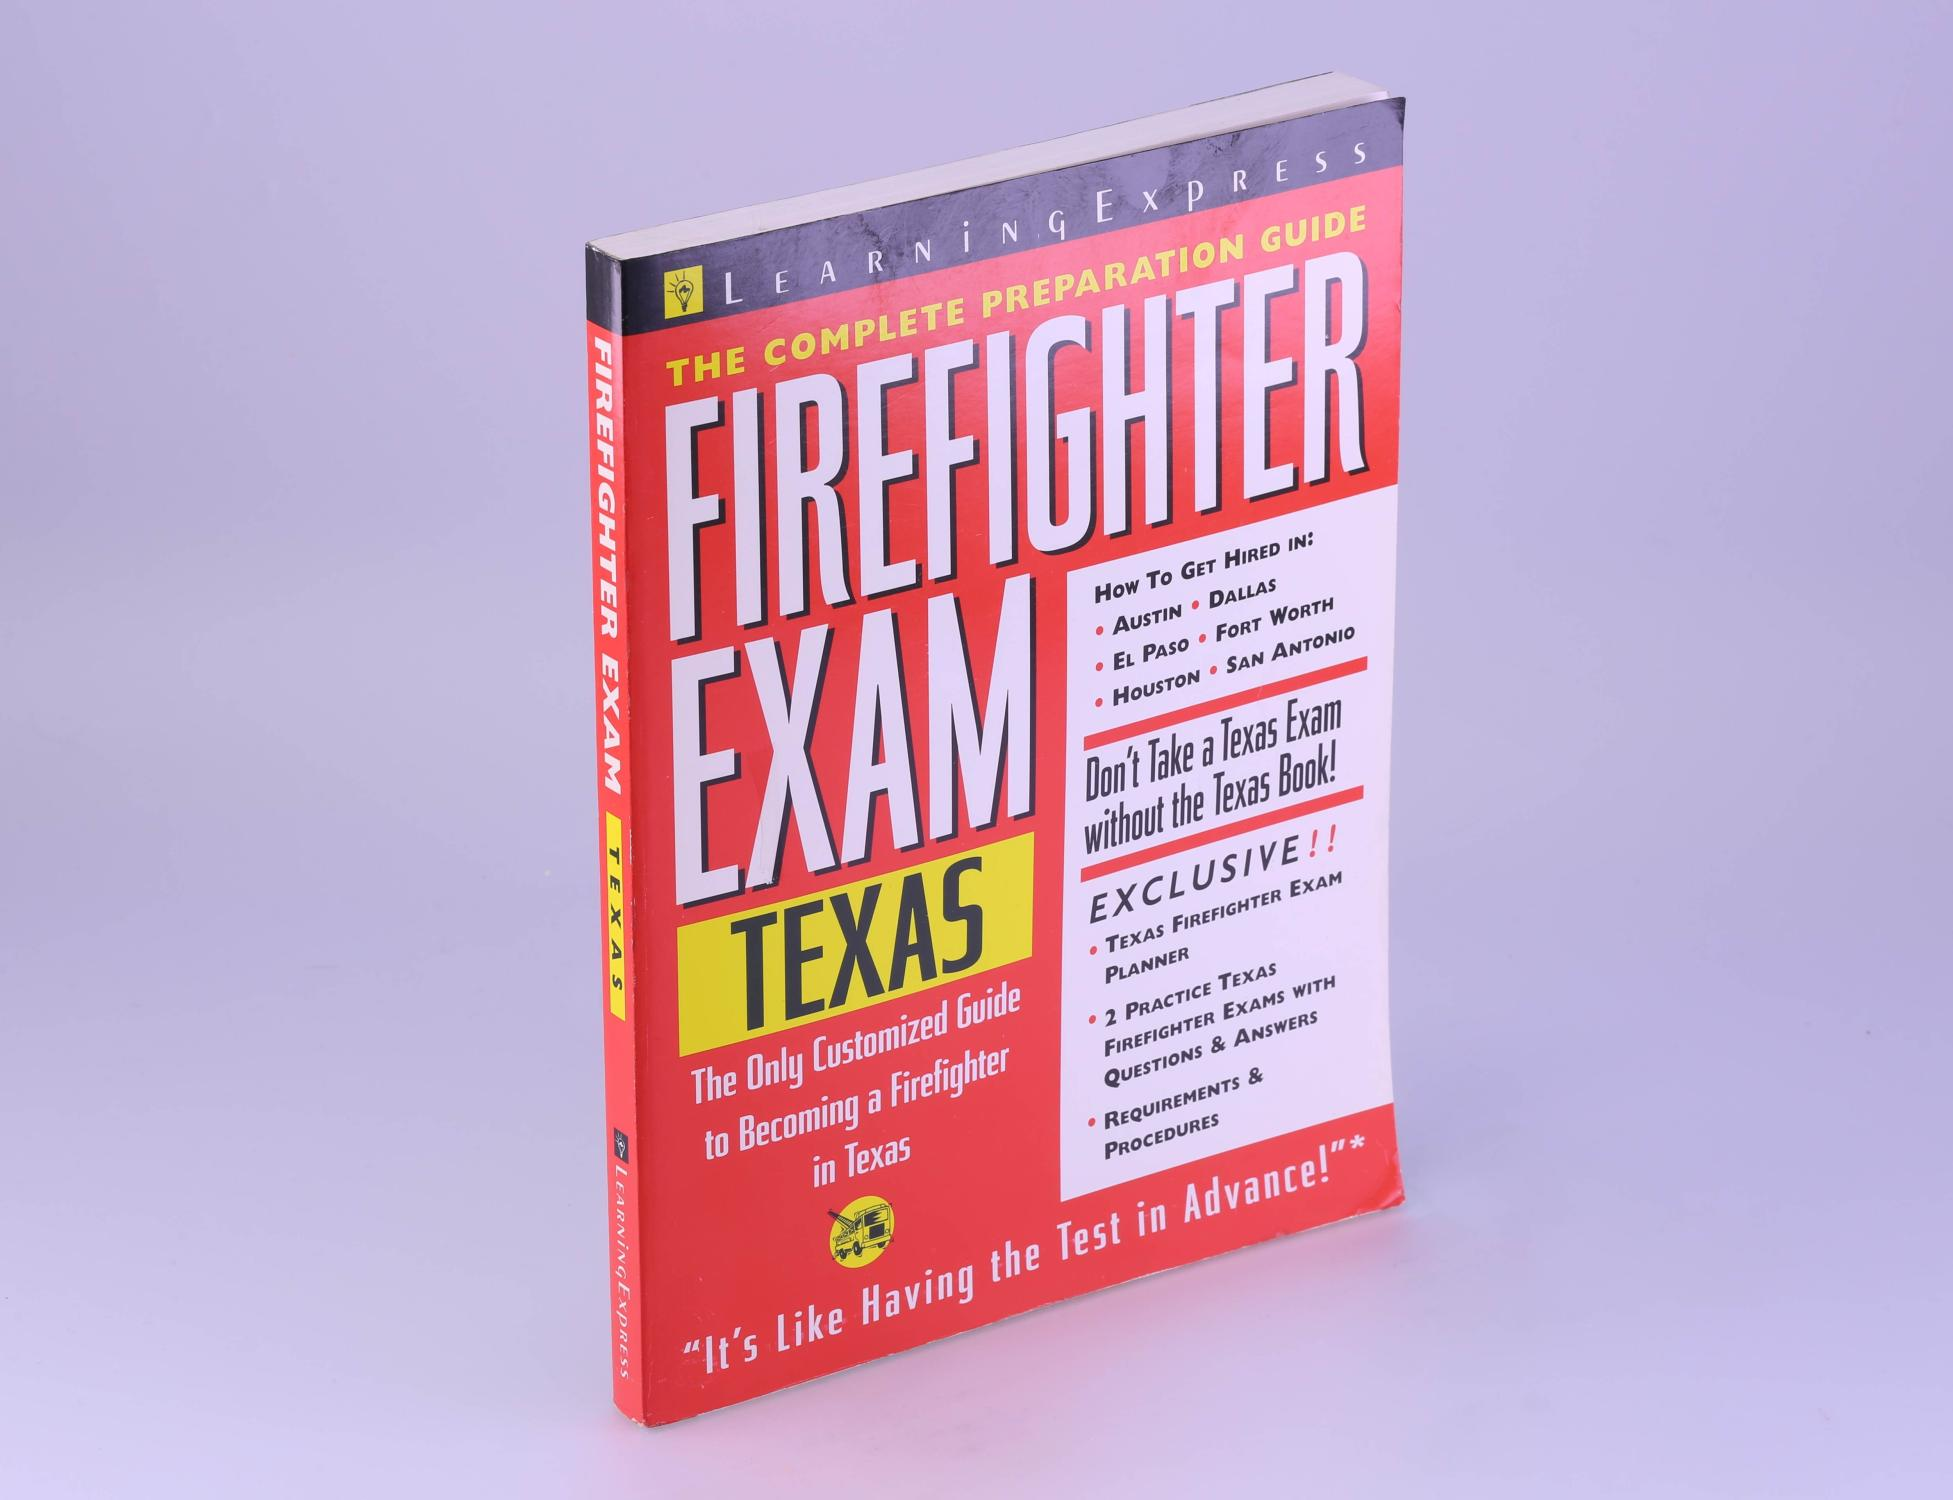 Firefighter Exam: Texas: The Complete